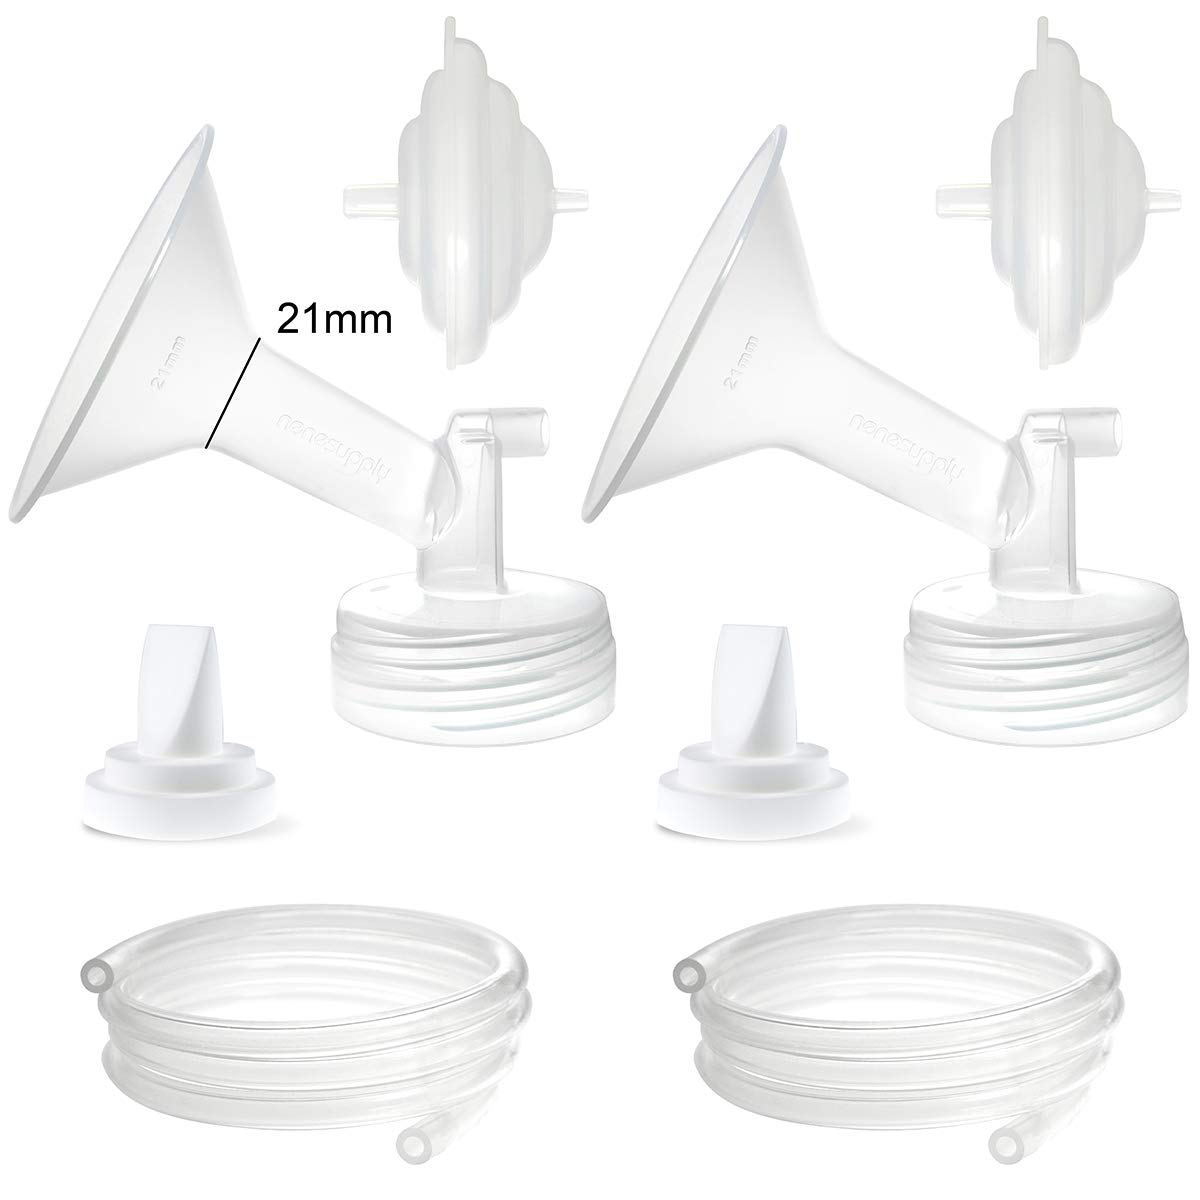 Nenesupply Compatible Pump Parts for Spectra S2 Spectra S1 Spectra 9 Plus Breastpump Flange Valve Tubing Backflow Protector Not Original Spectra S2 Accessories Not Original Spectra Pump Parts